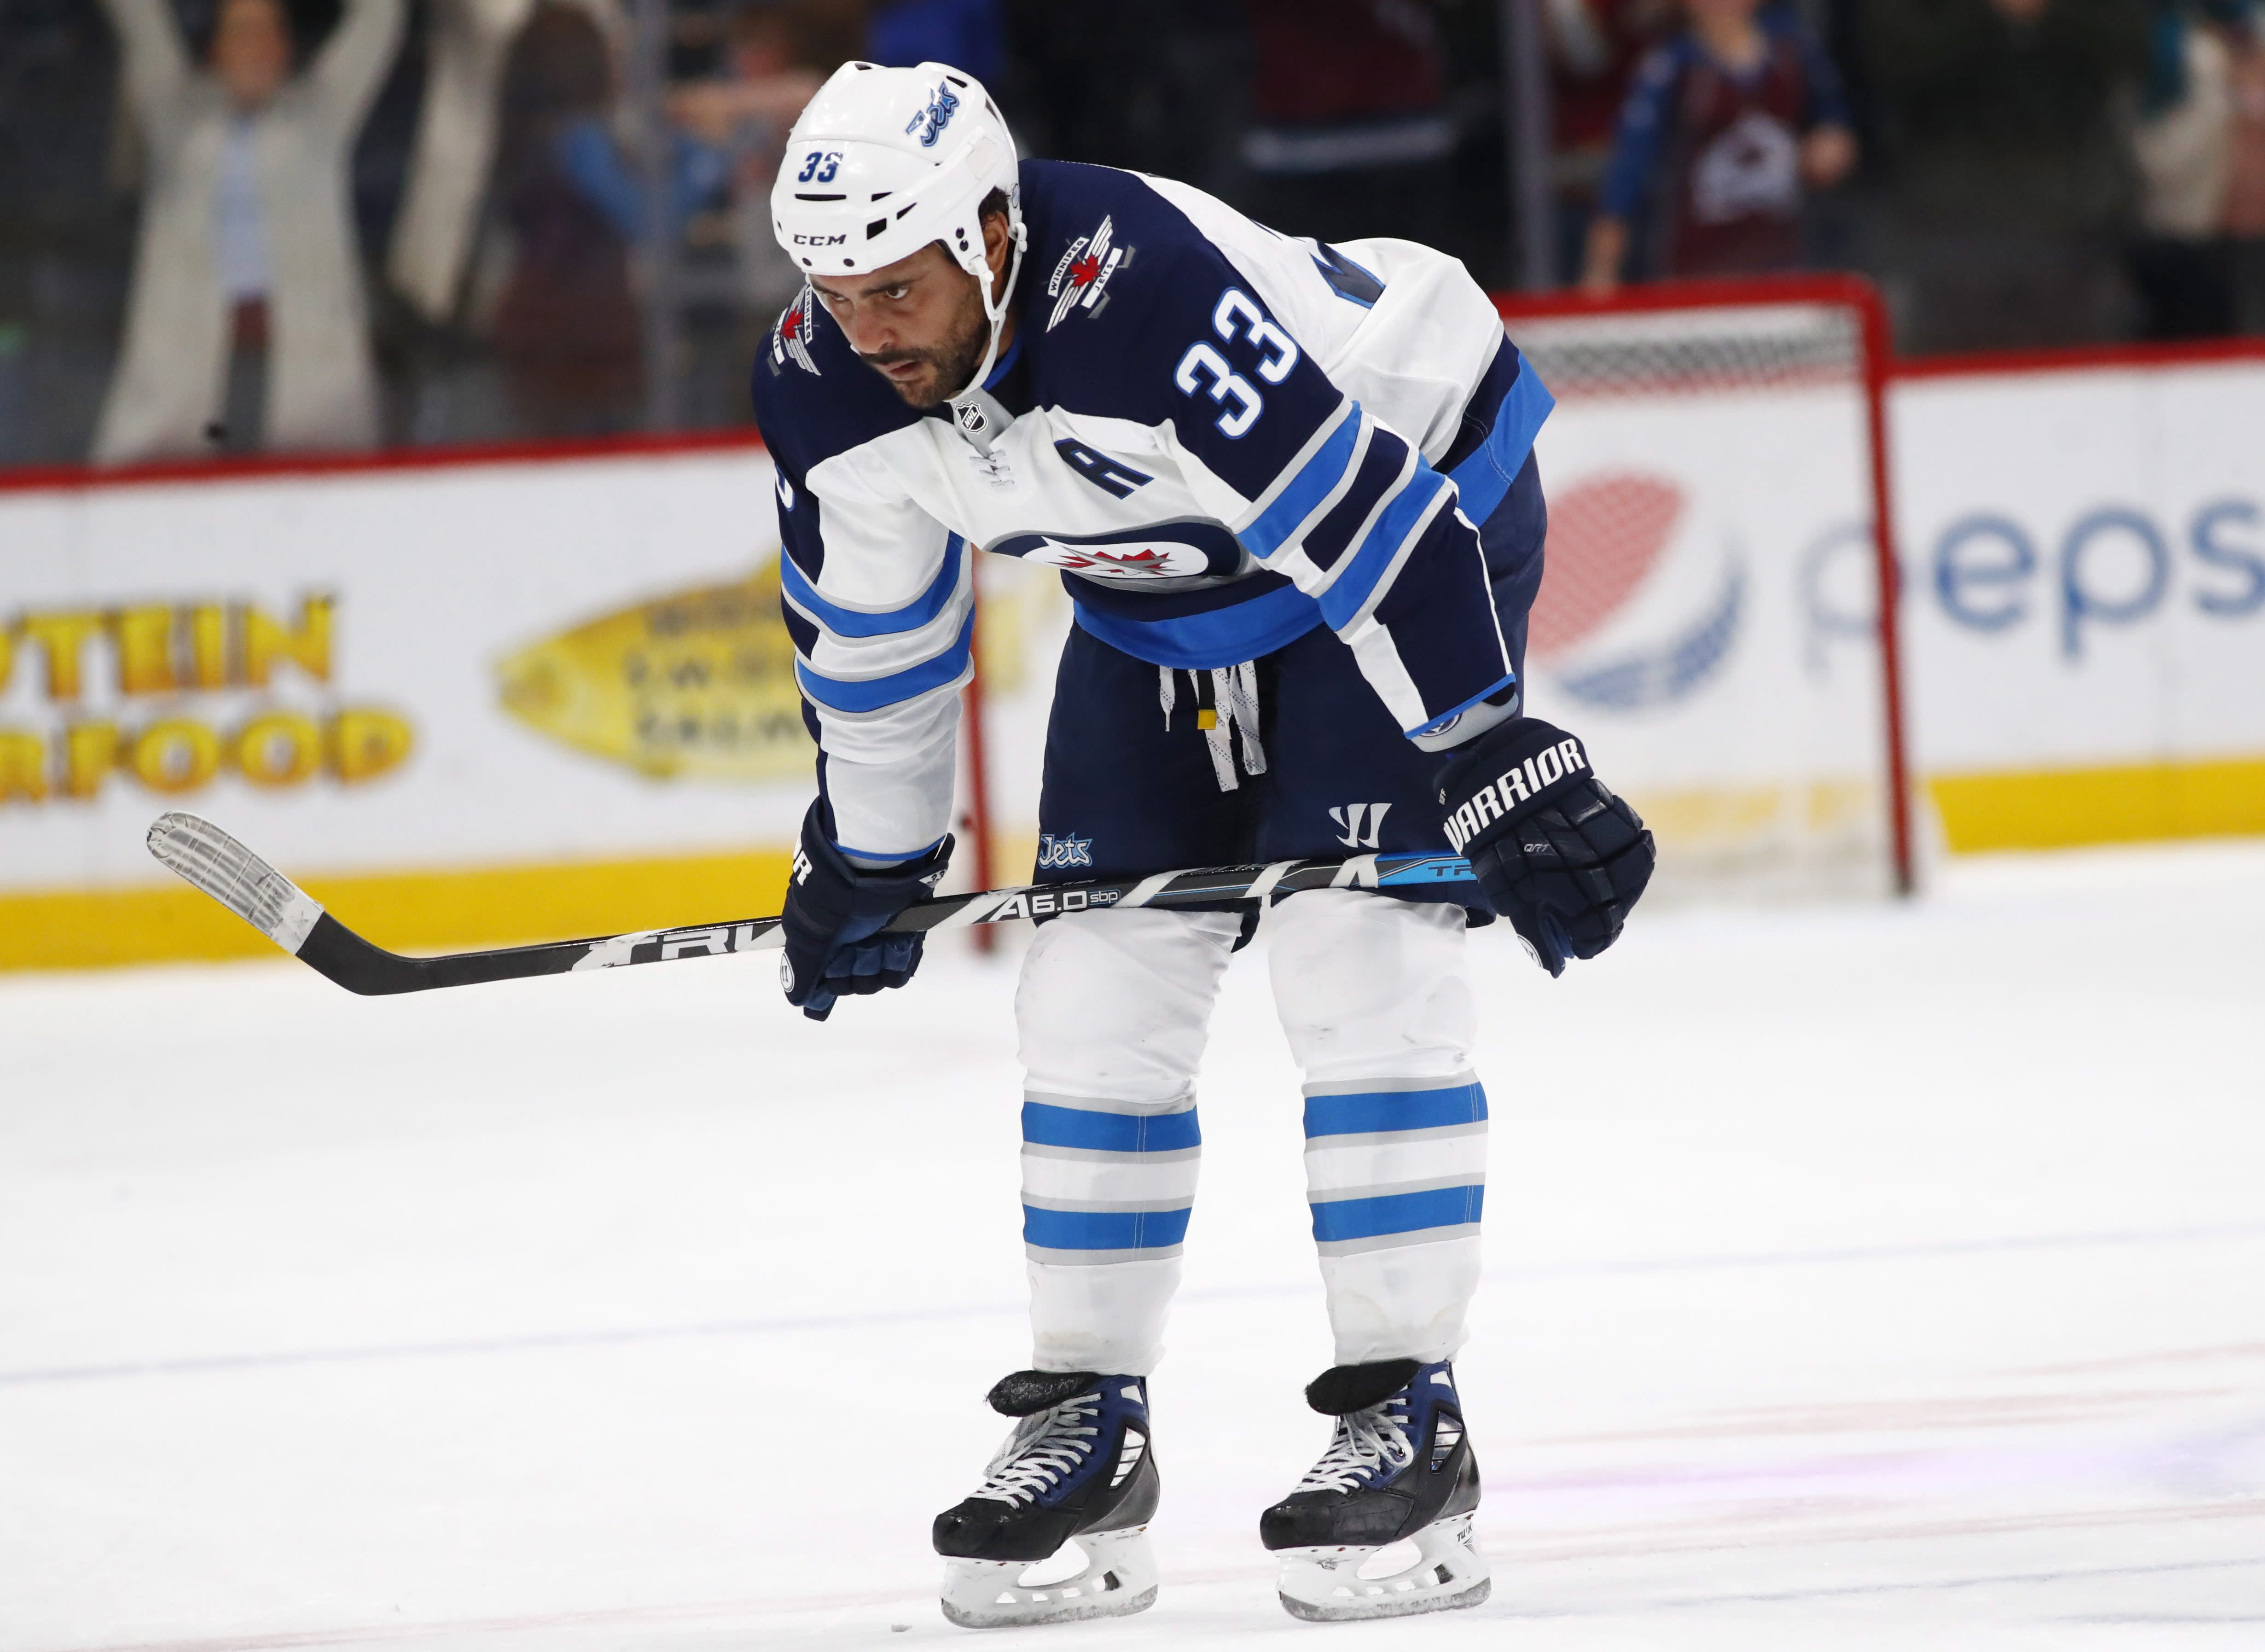 Jets' Byfuglien scores his first goal of the season... finally